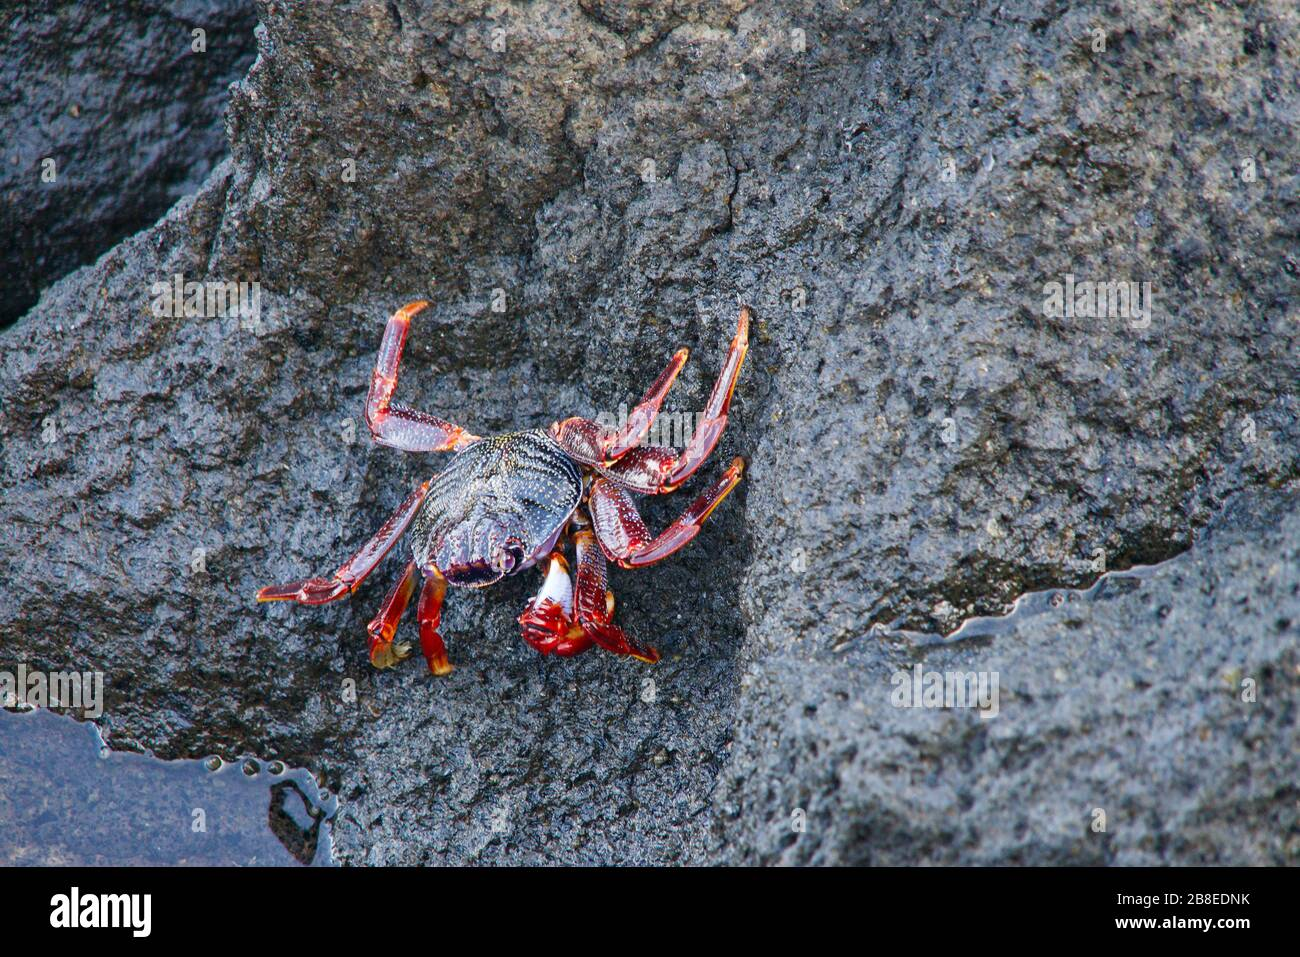 close-up of a young red rock crab Stock Photo